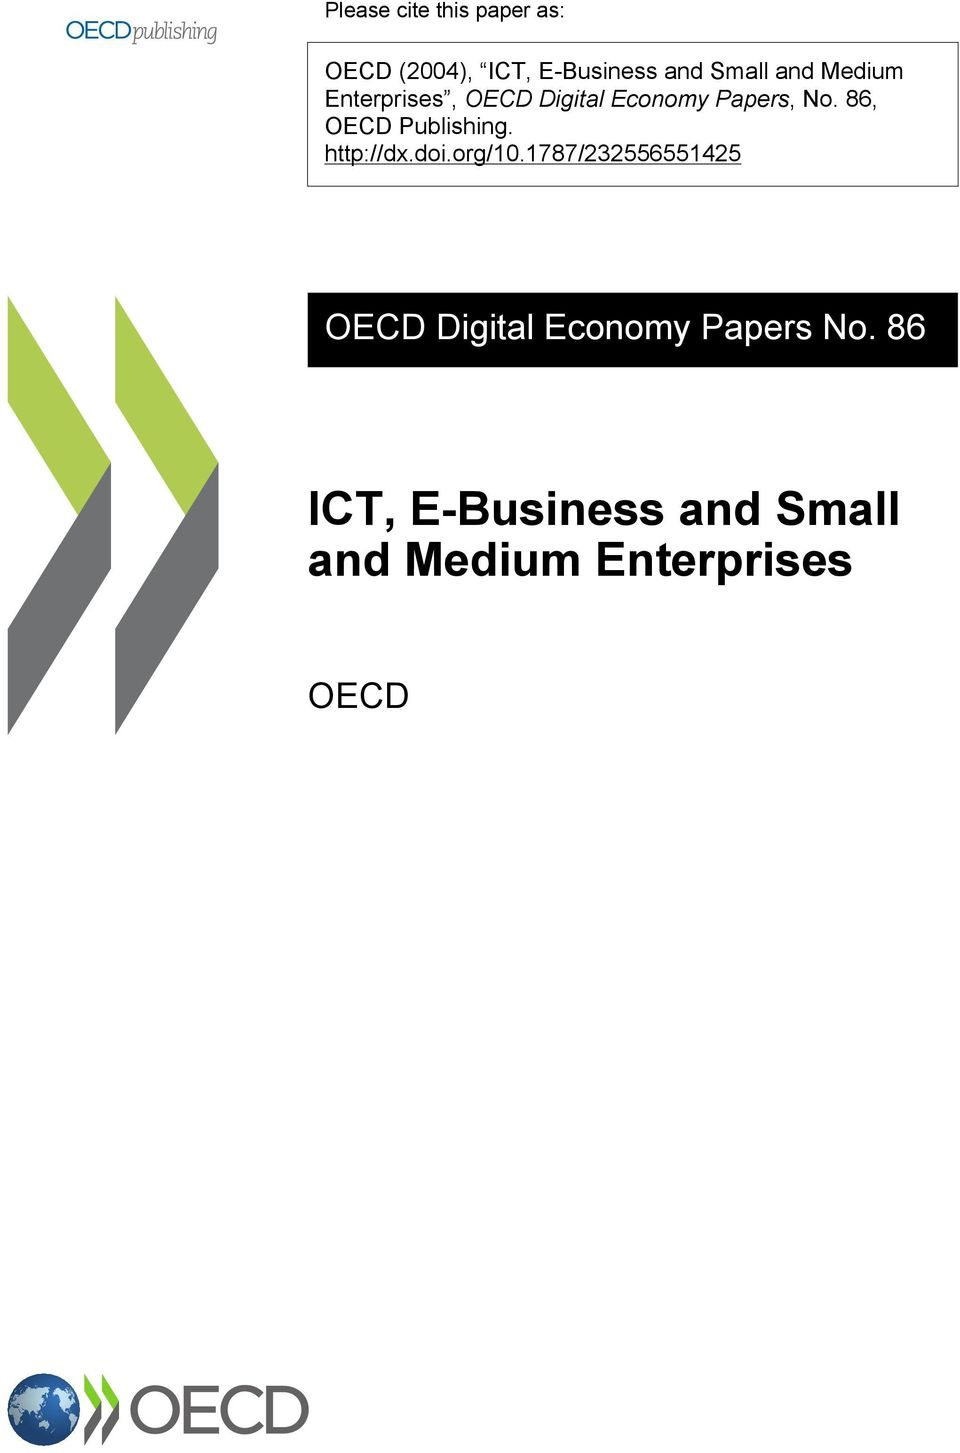 86, OECD Publishing. http://dx.doi.org/10.